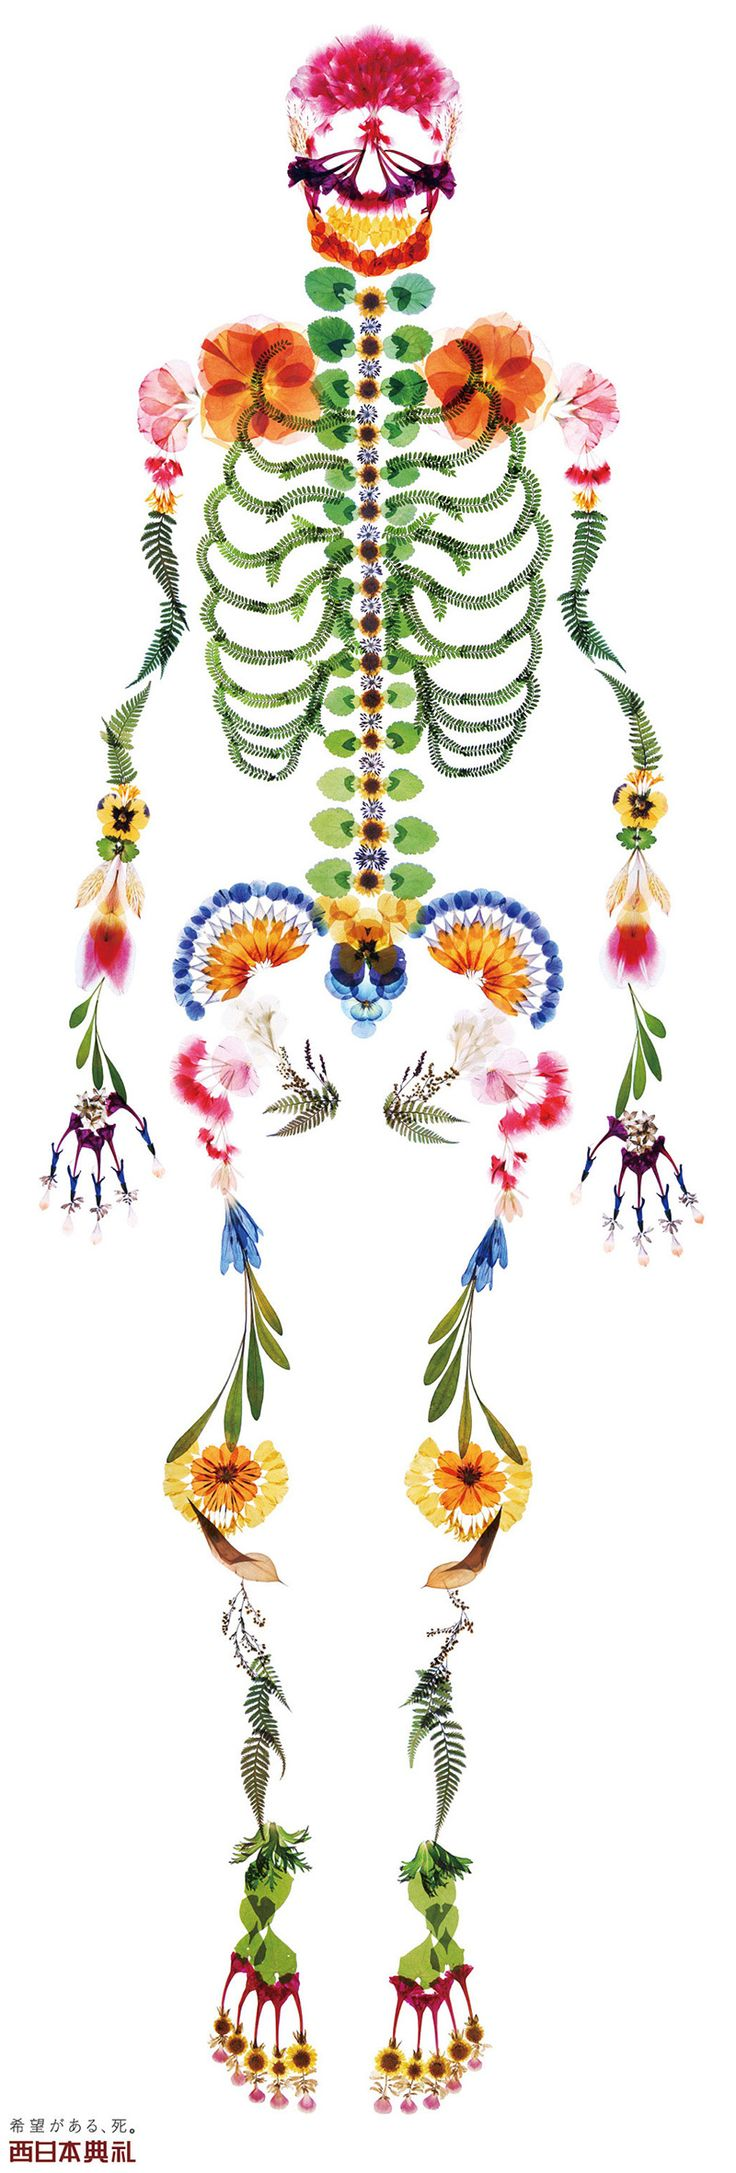 A pressed flower skeleton bucks the trend in advertising for funeral services in…